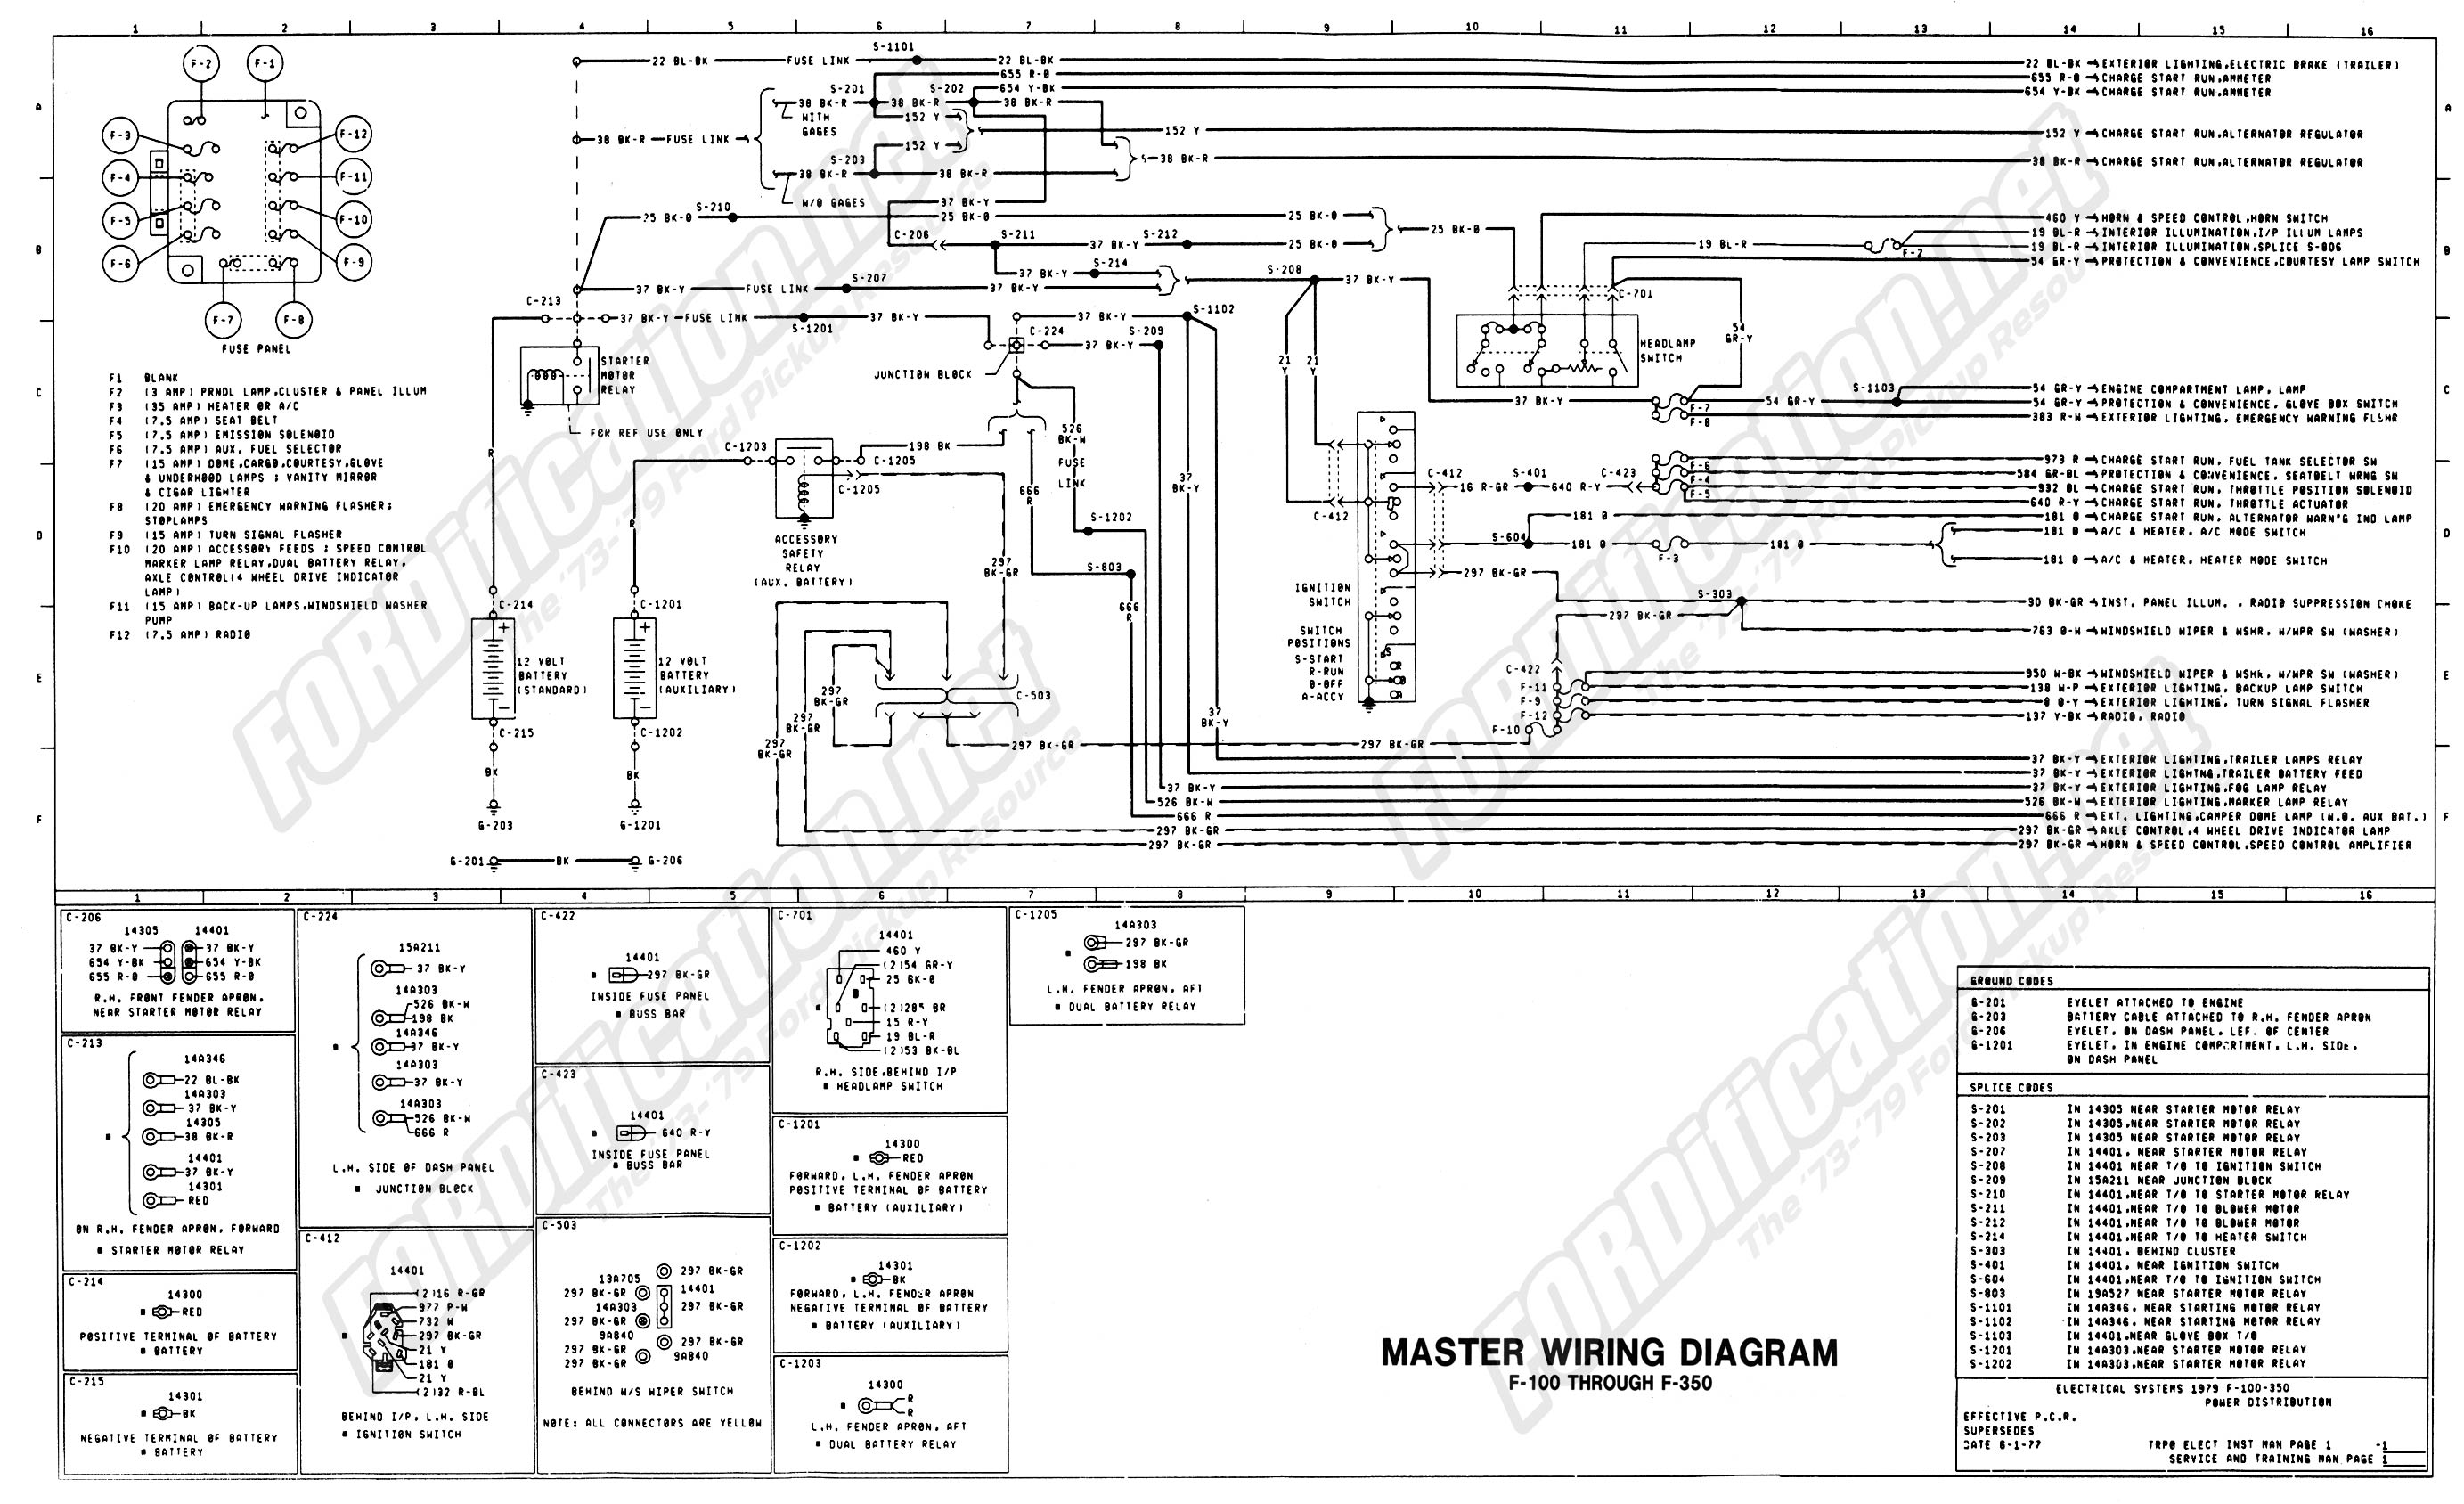 wiring_79master_1of9 1977 dodge van ignition wiring diagram wiring diagram simonand 73 bronco wiring diagram at n-0.co